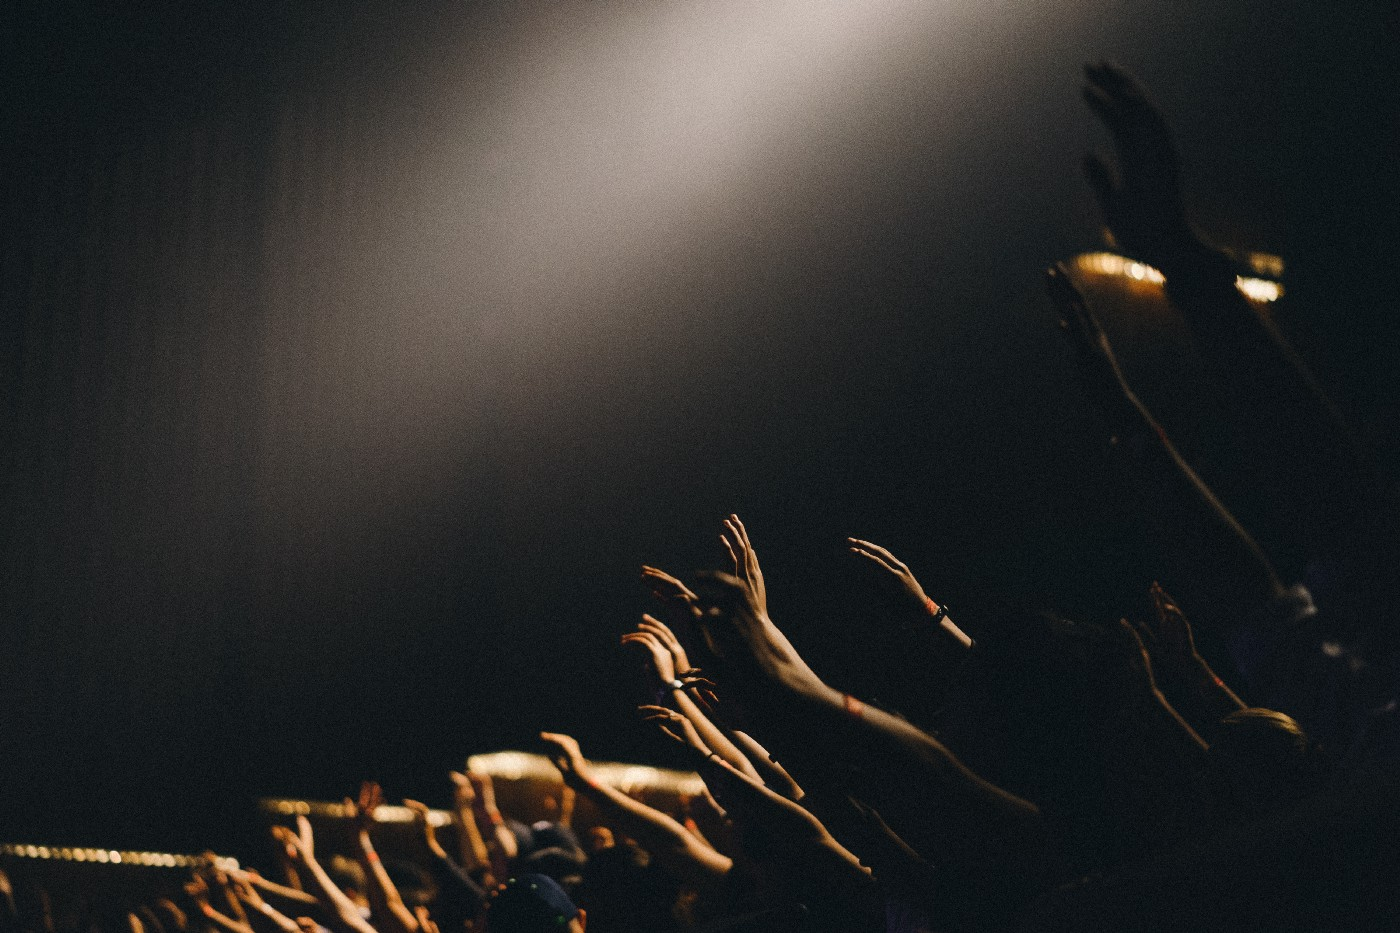 An image of many hands raised in the dark, with light touching their fingertips. They are worshiping, or perhaps begging.